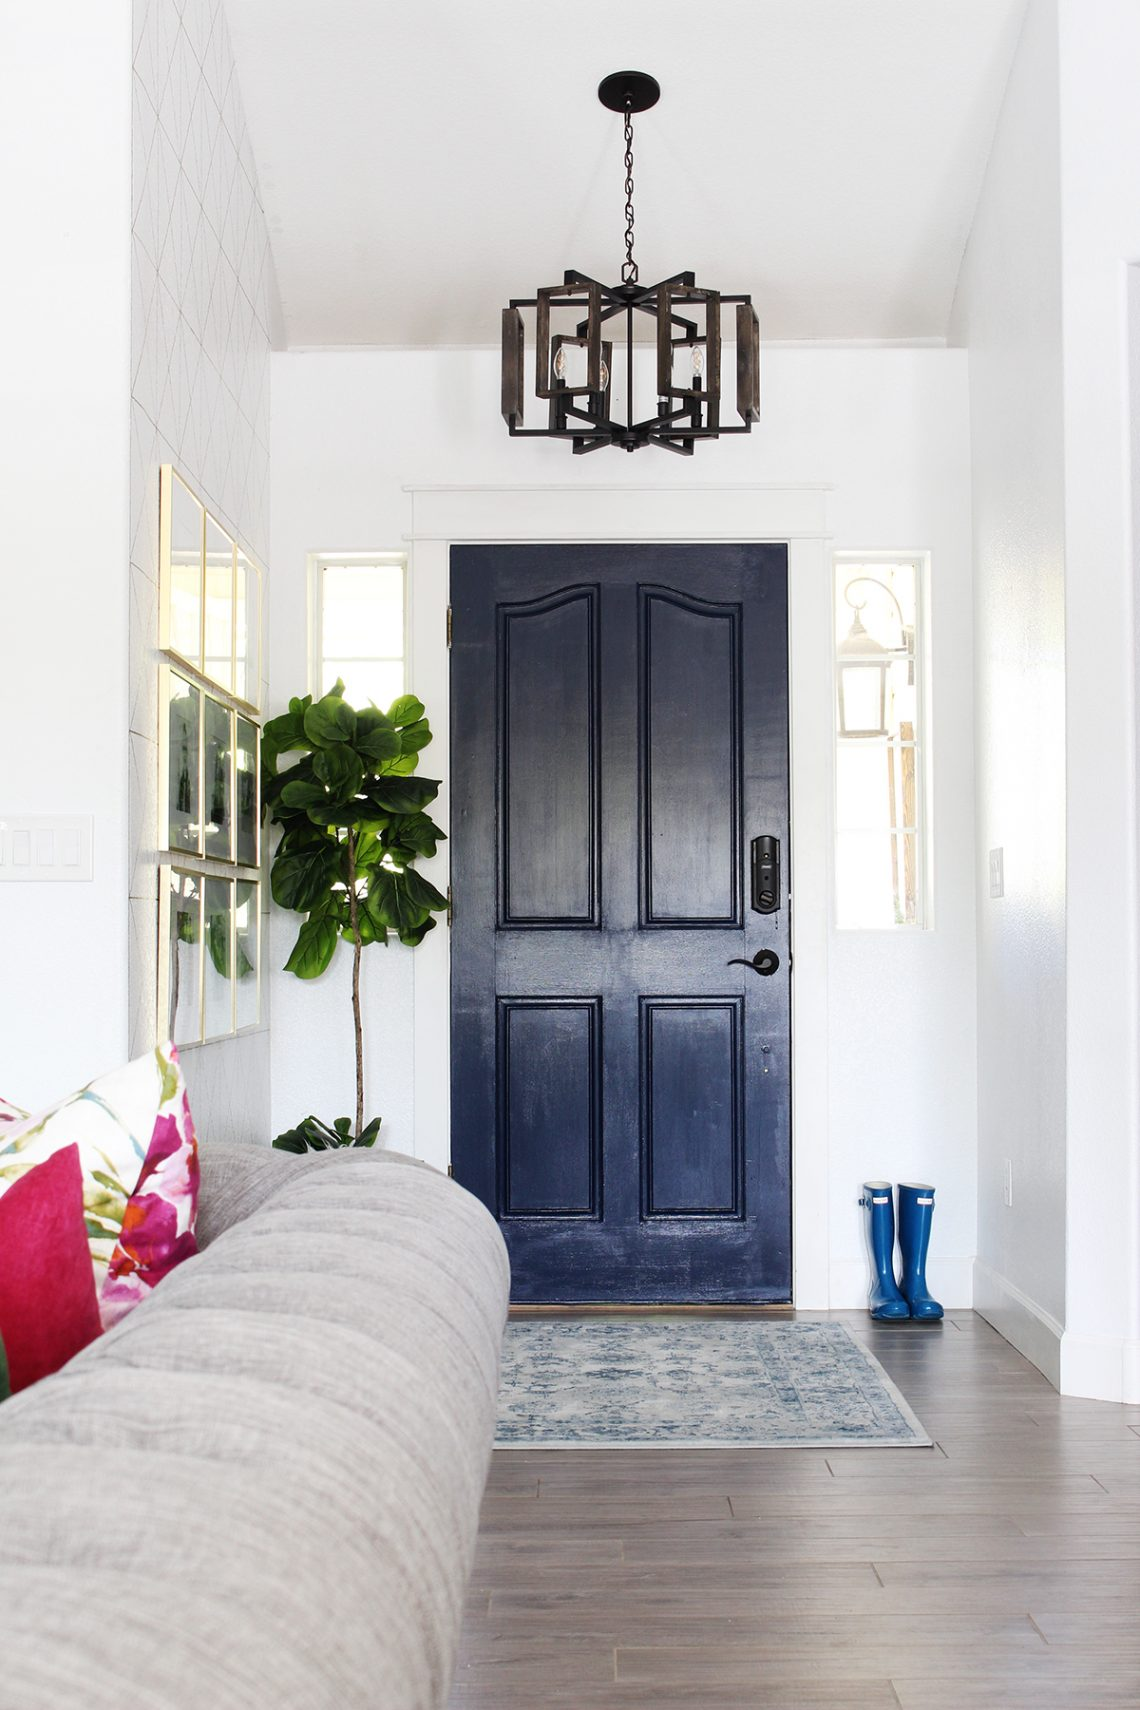 Park Home Reno  Entry Way Makeover. Park Home Reno  Entry Way Makeover   Classy Clutter